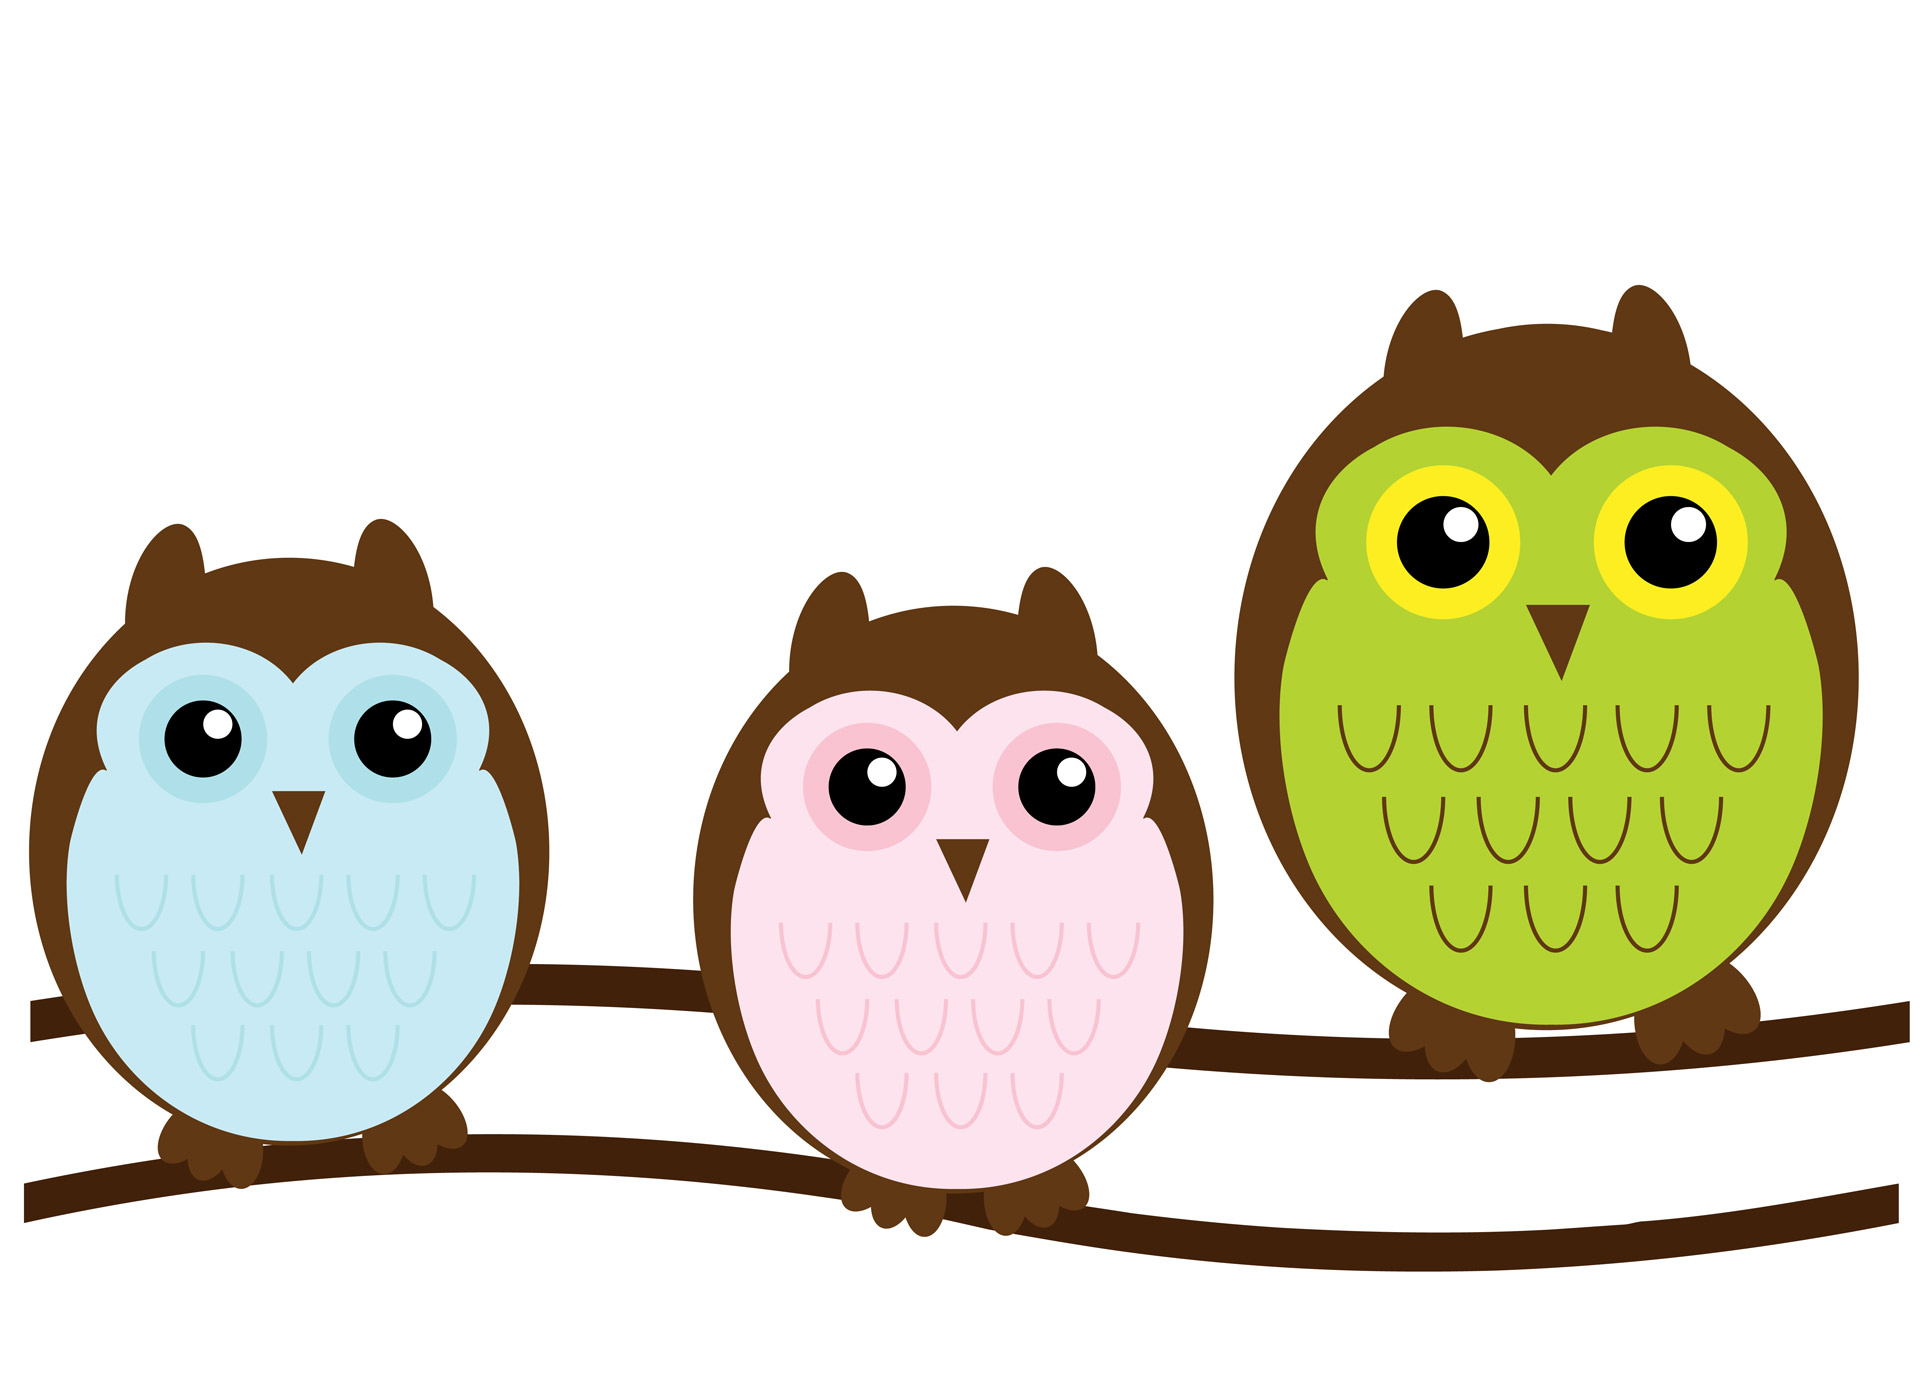 Free Cute Cliparts, Download Free Clip Art, Free Clip Art on